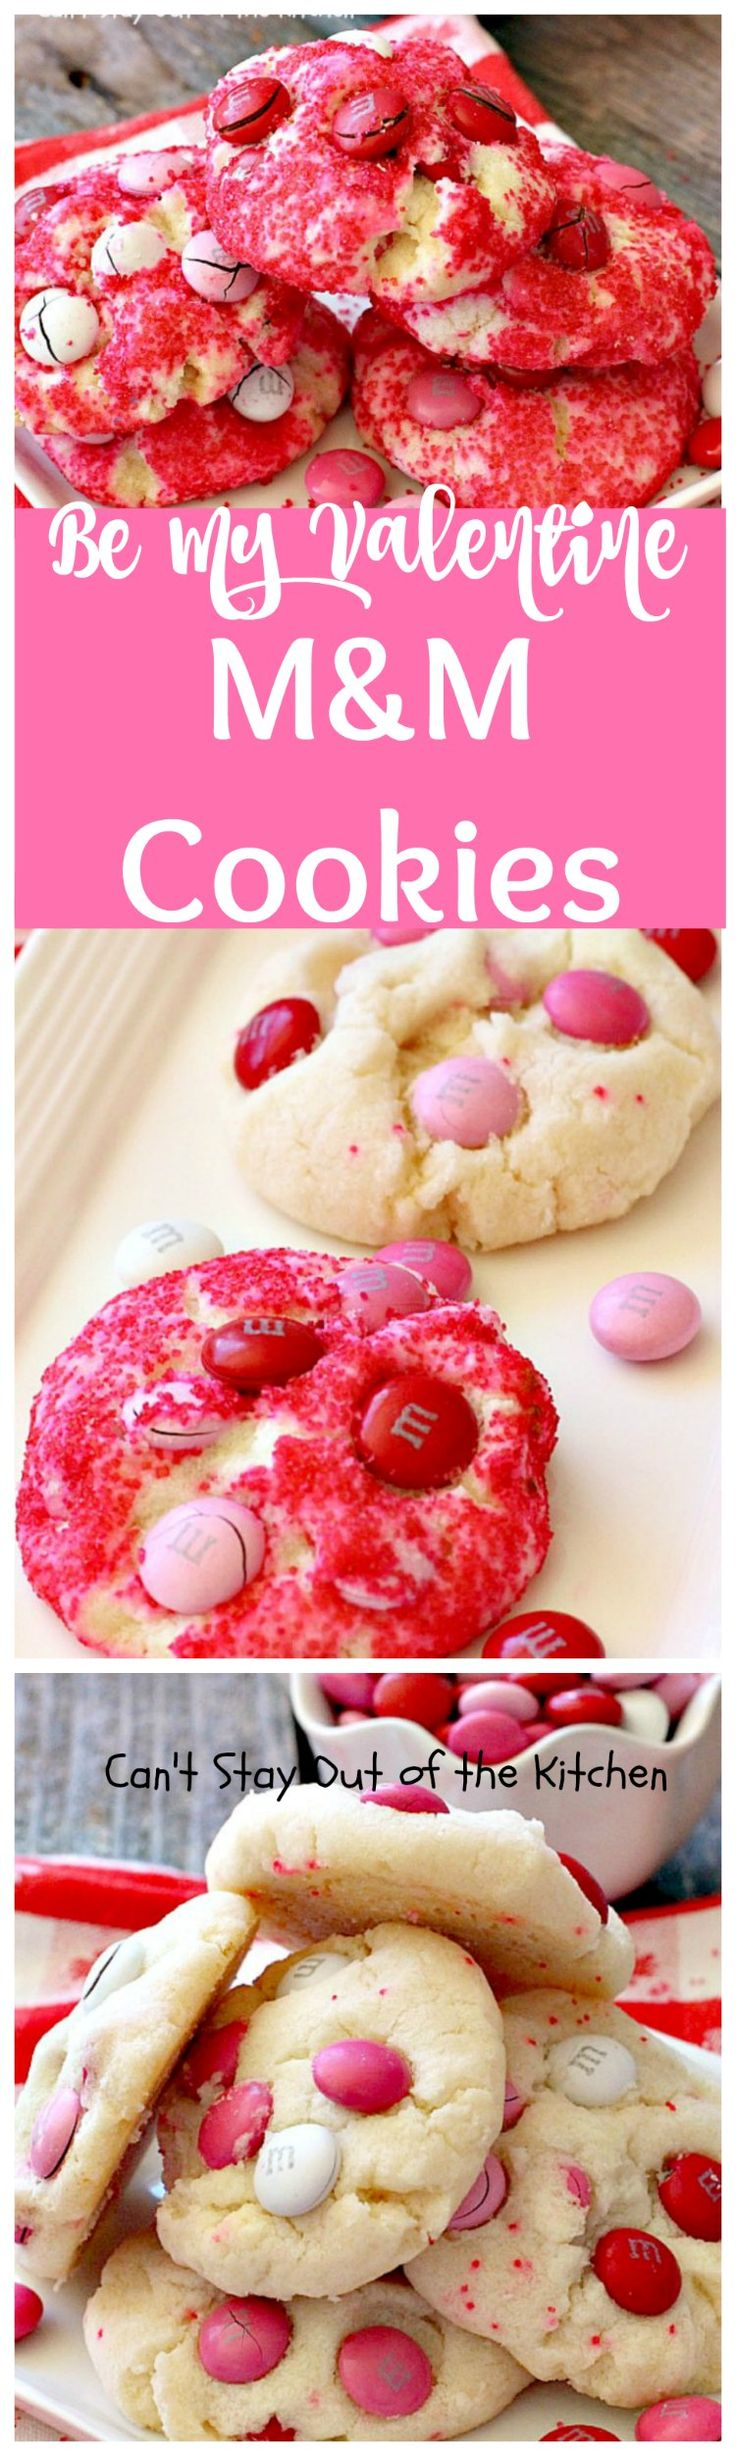 Be My Valentine M&M Cookies | Can't Stay Out of the Kitchen | Paradise Cafe copycat